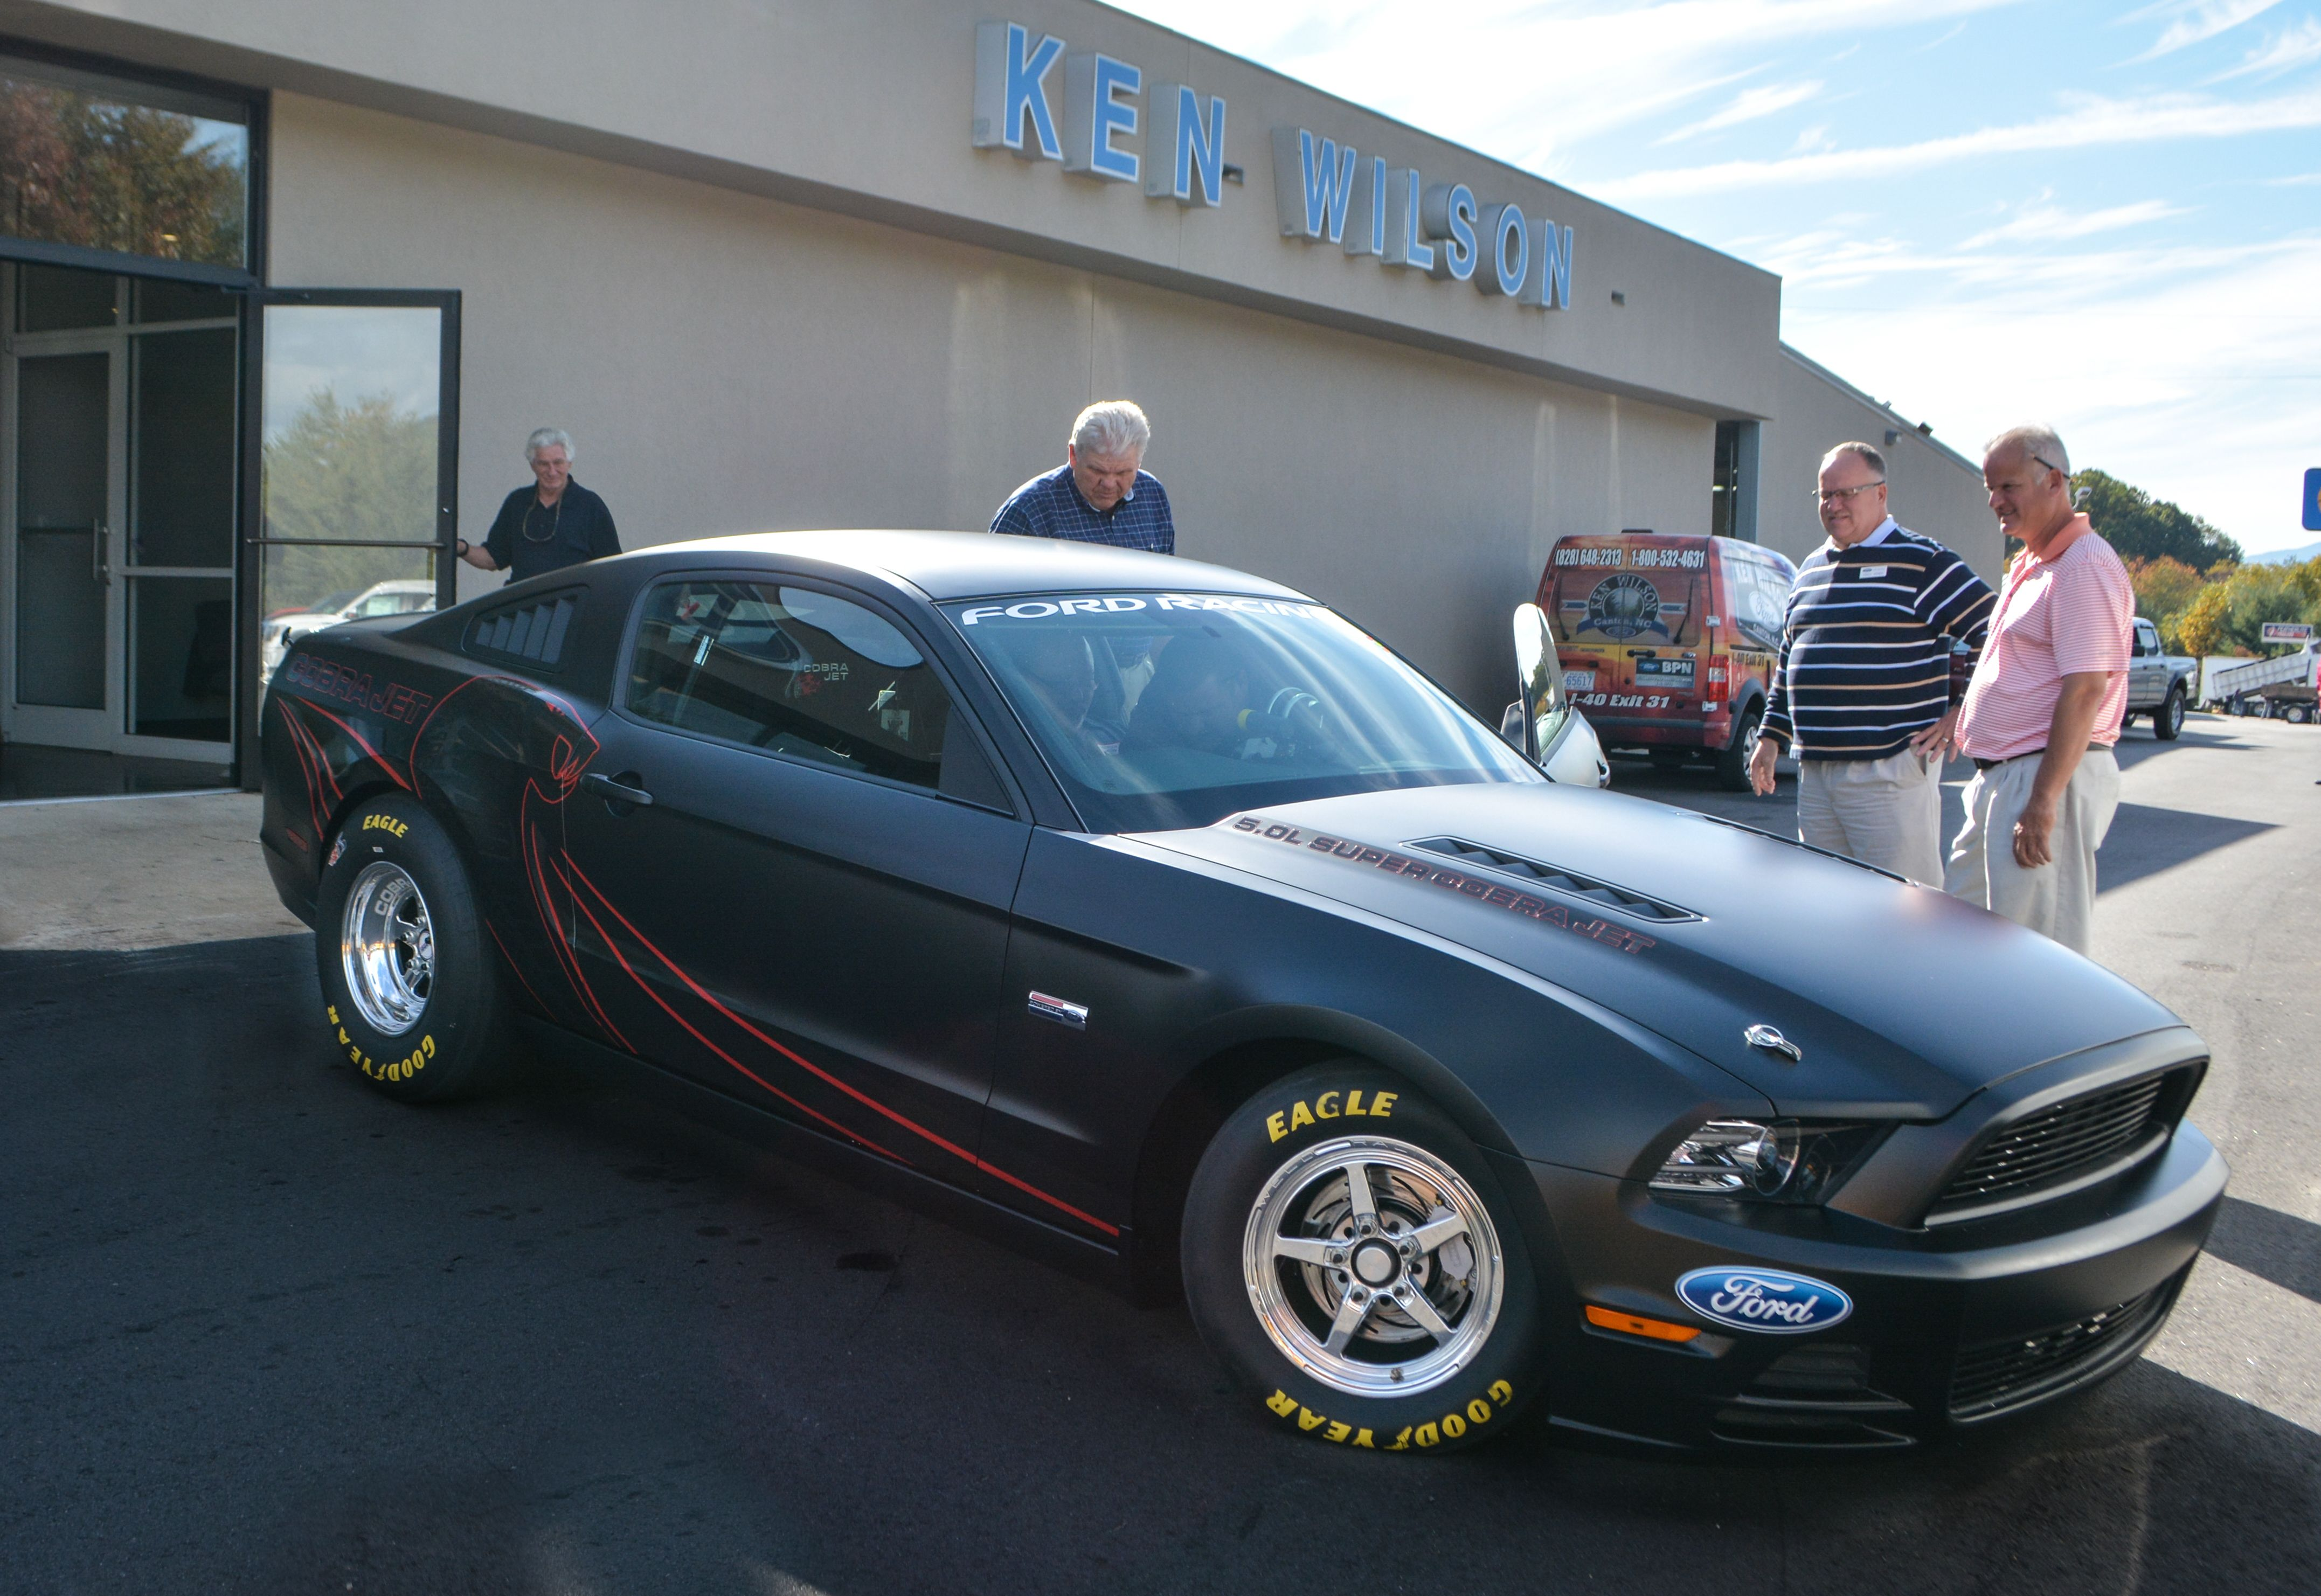 2014 Ford Mustang Cobra Jet In stock at Ken Wilson Ford Delivered